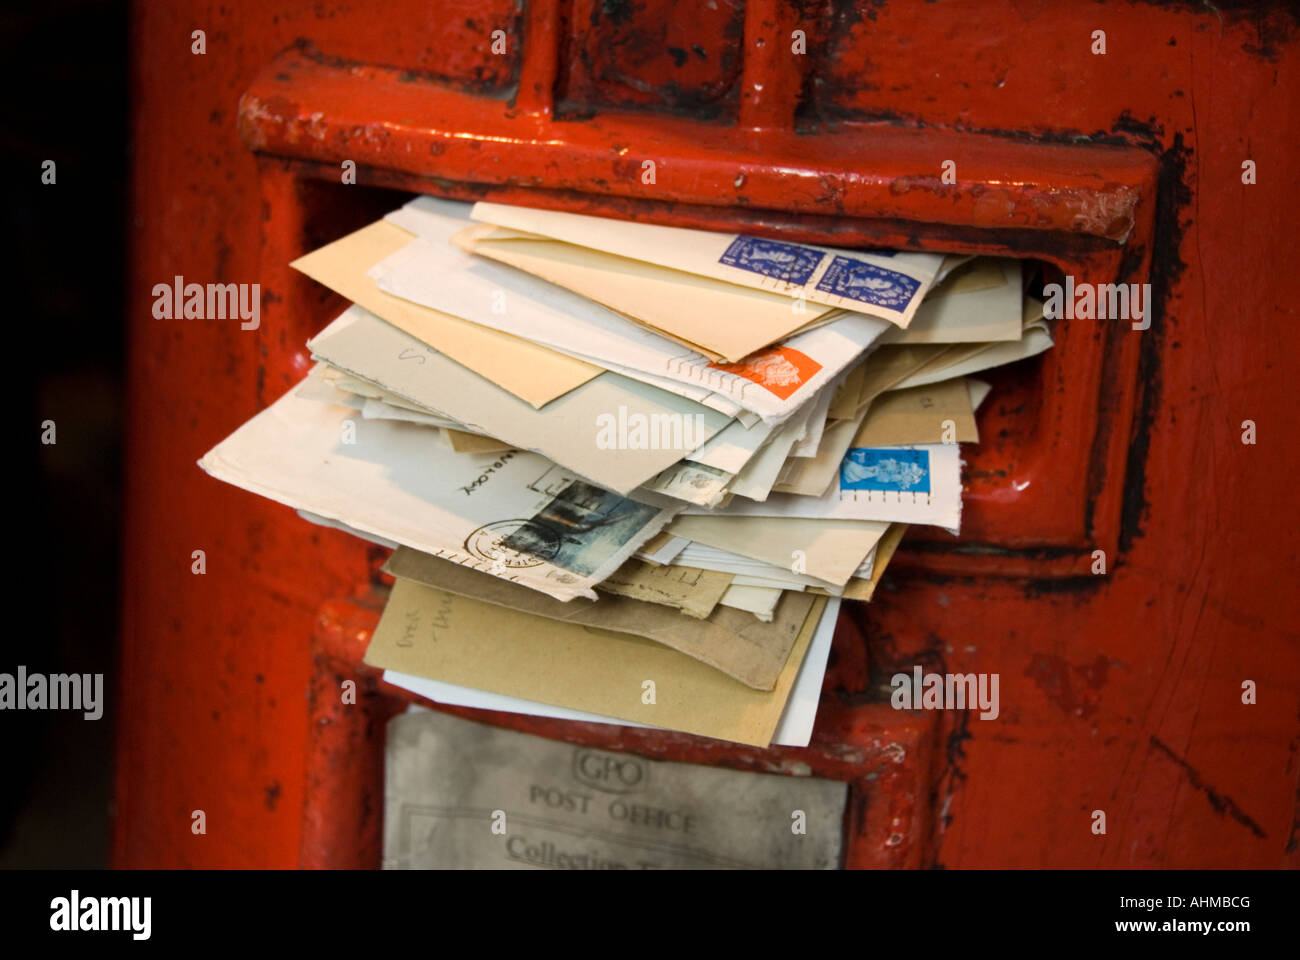 Overflowing Mailbox Stock Photos Amp Overflowing Mailbox